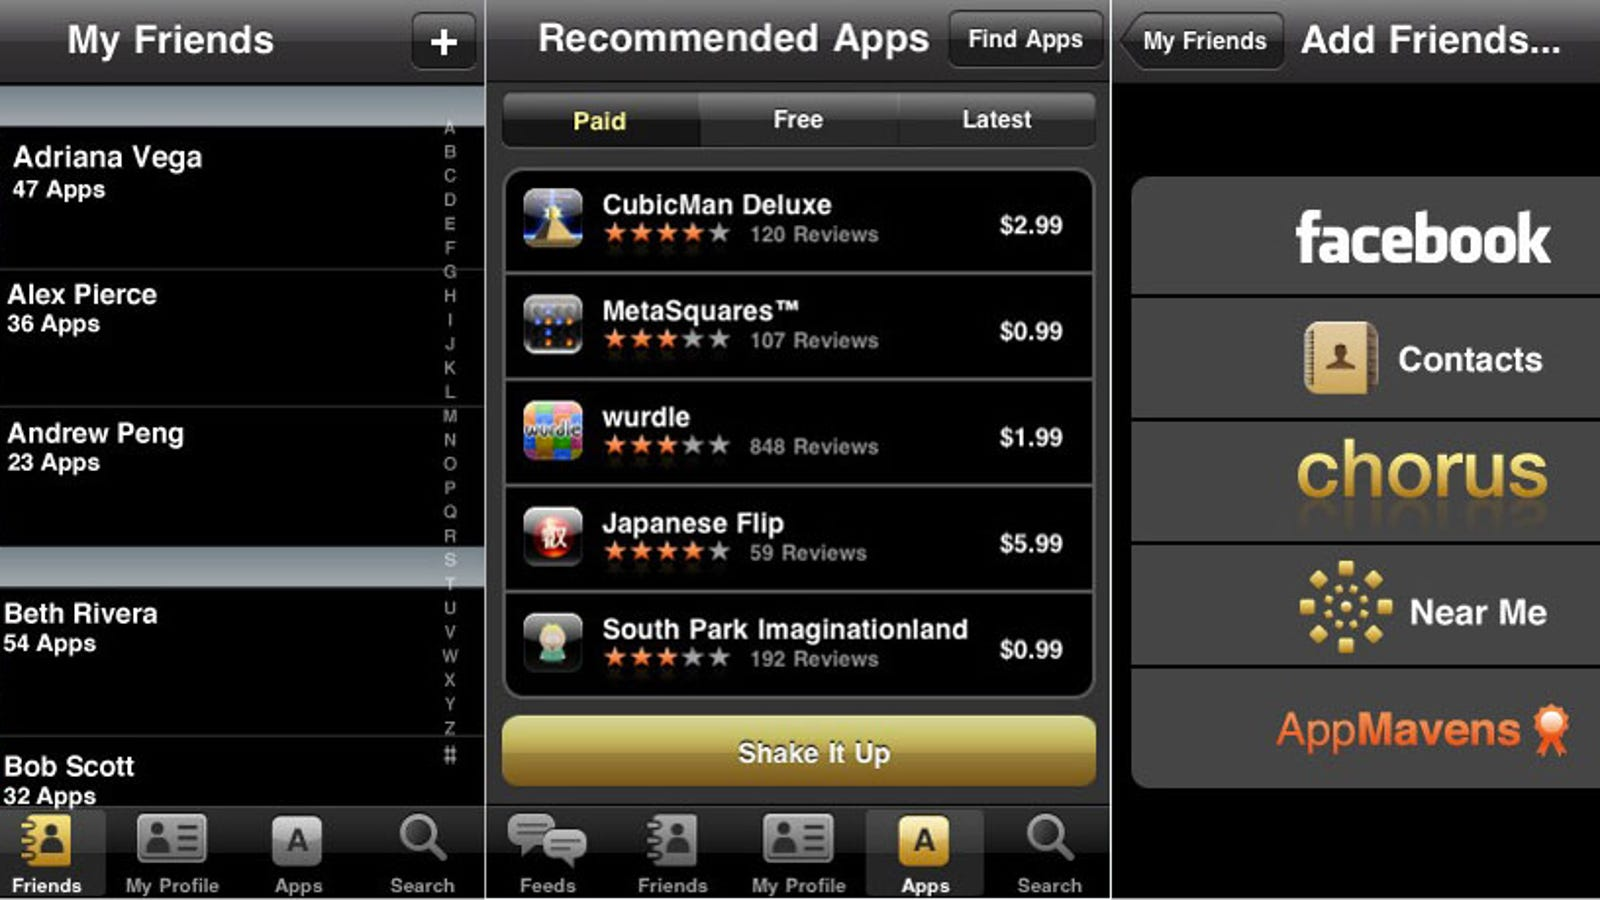 Chorus for iPhone Puts a Better App Store Inside the App Store